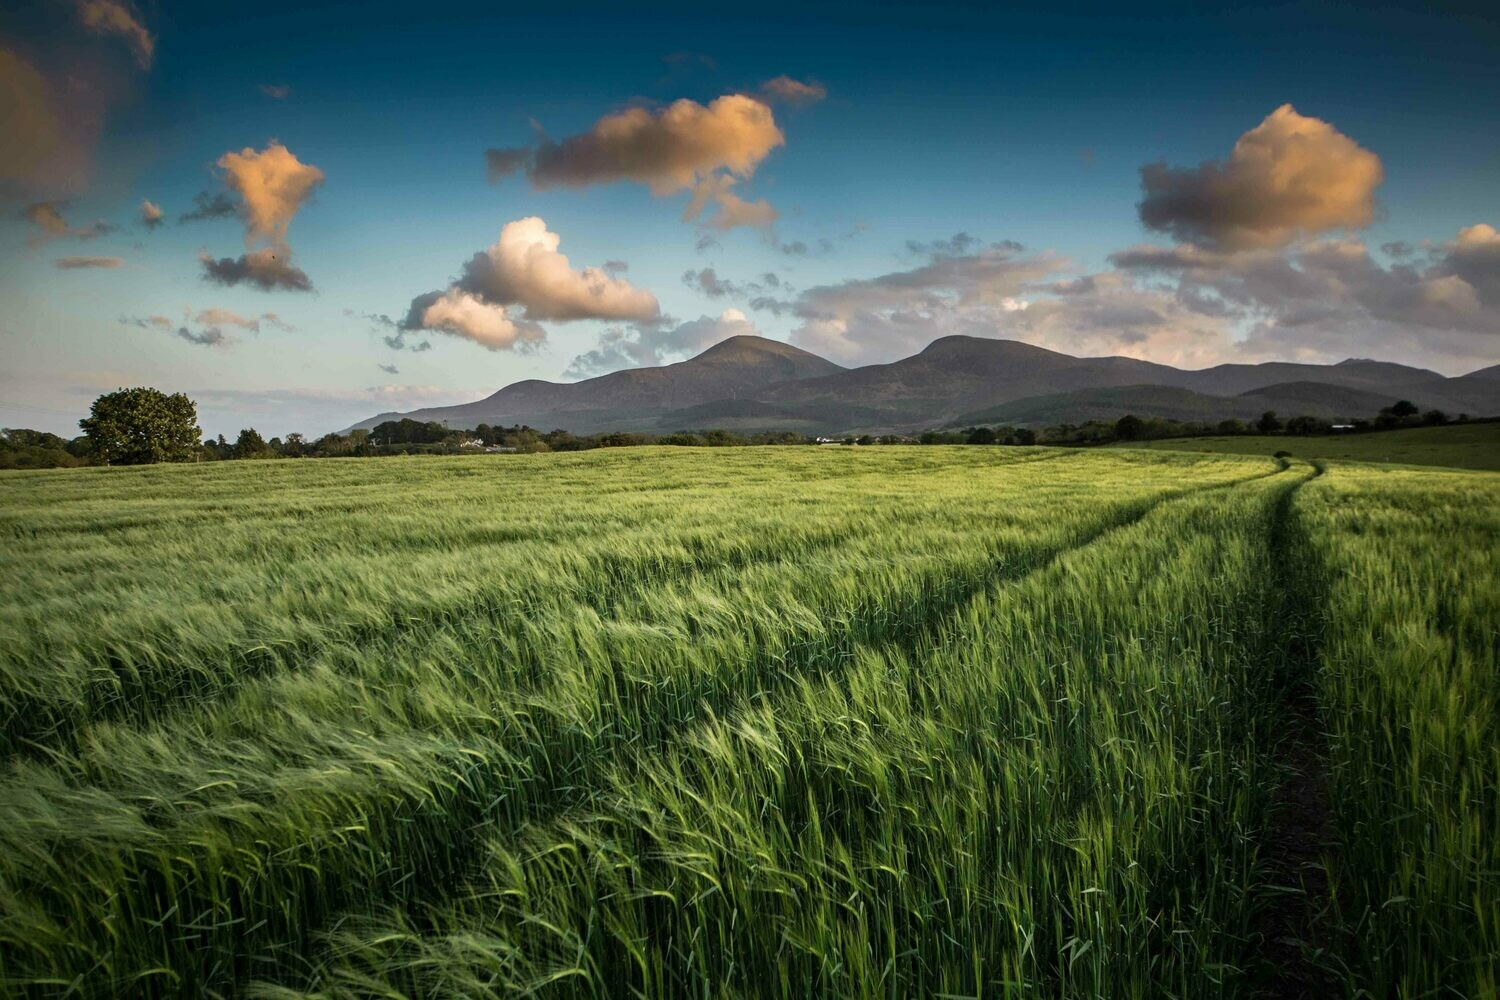 The Mourne Mountains, Maghera, County Down, N.Ireland